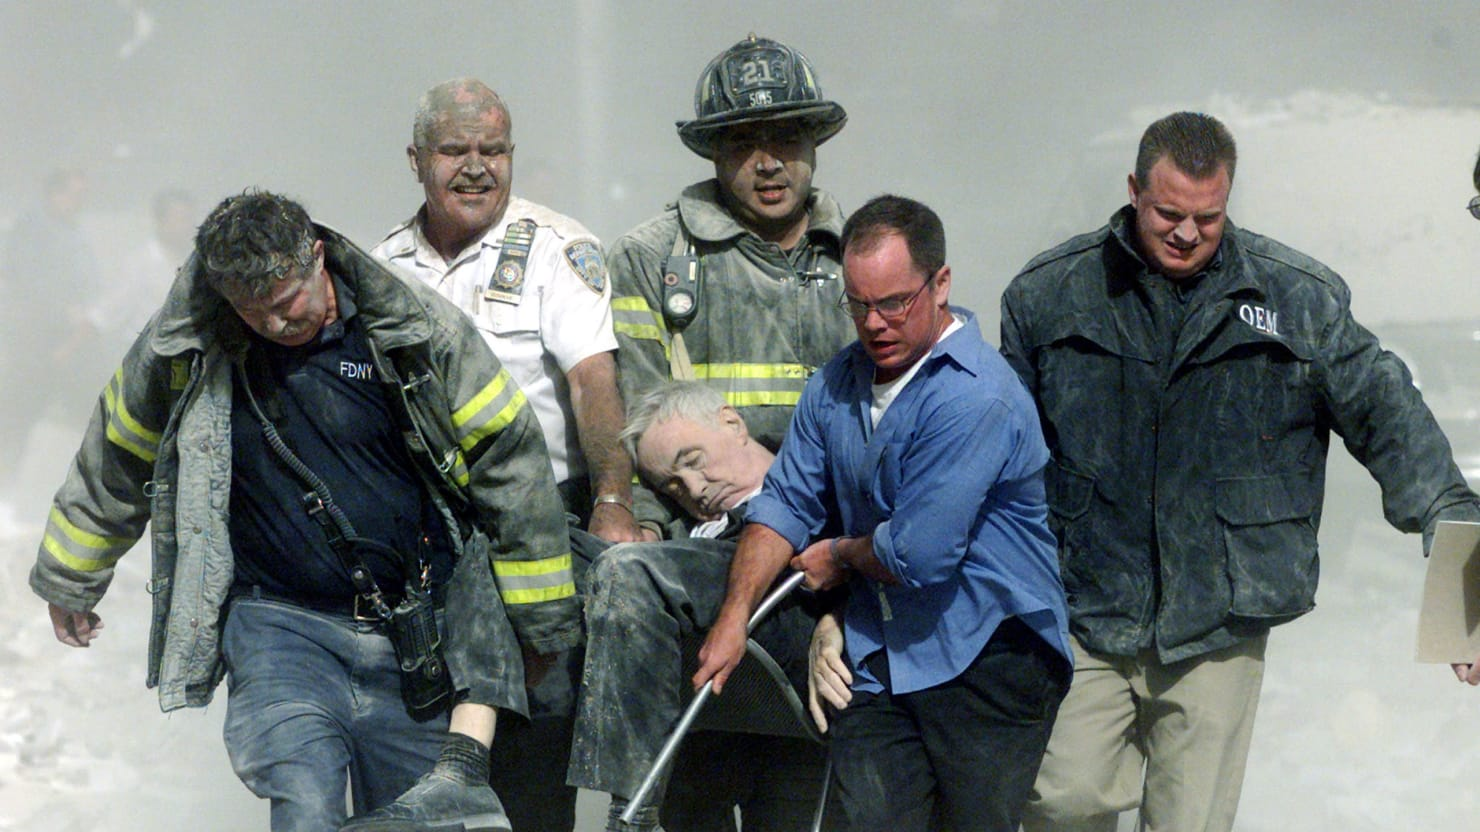 Iconic Photos from 9/11